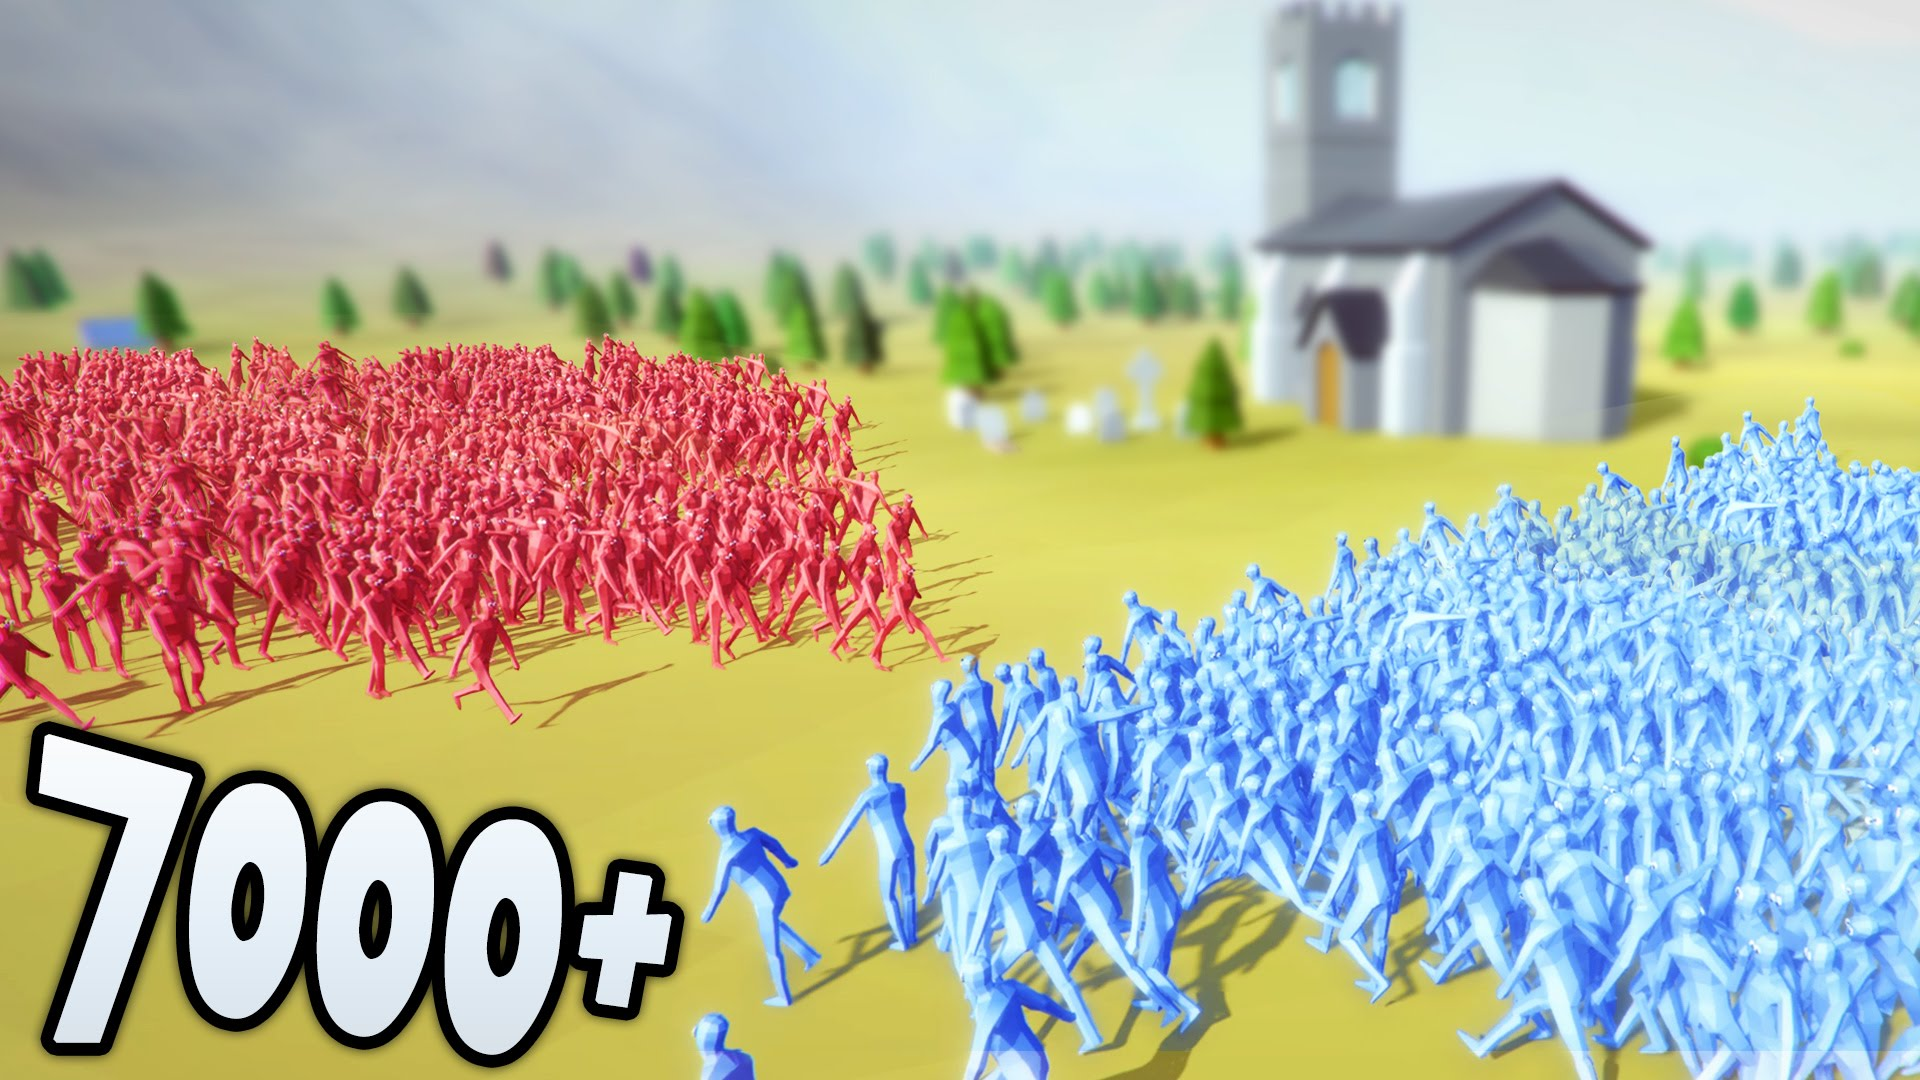 accurate battle simulator demo